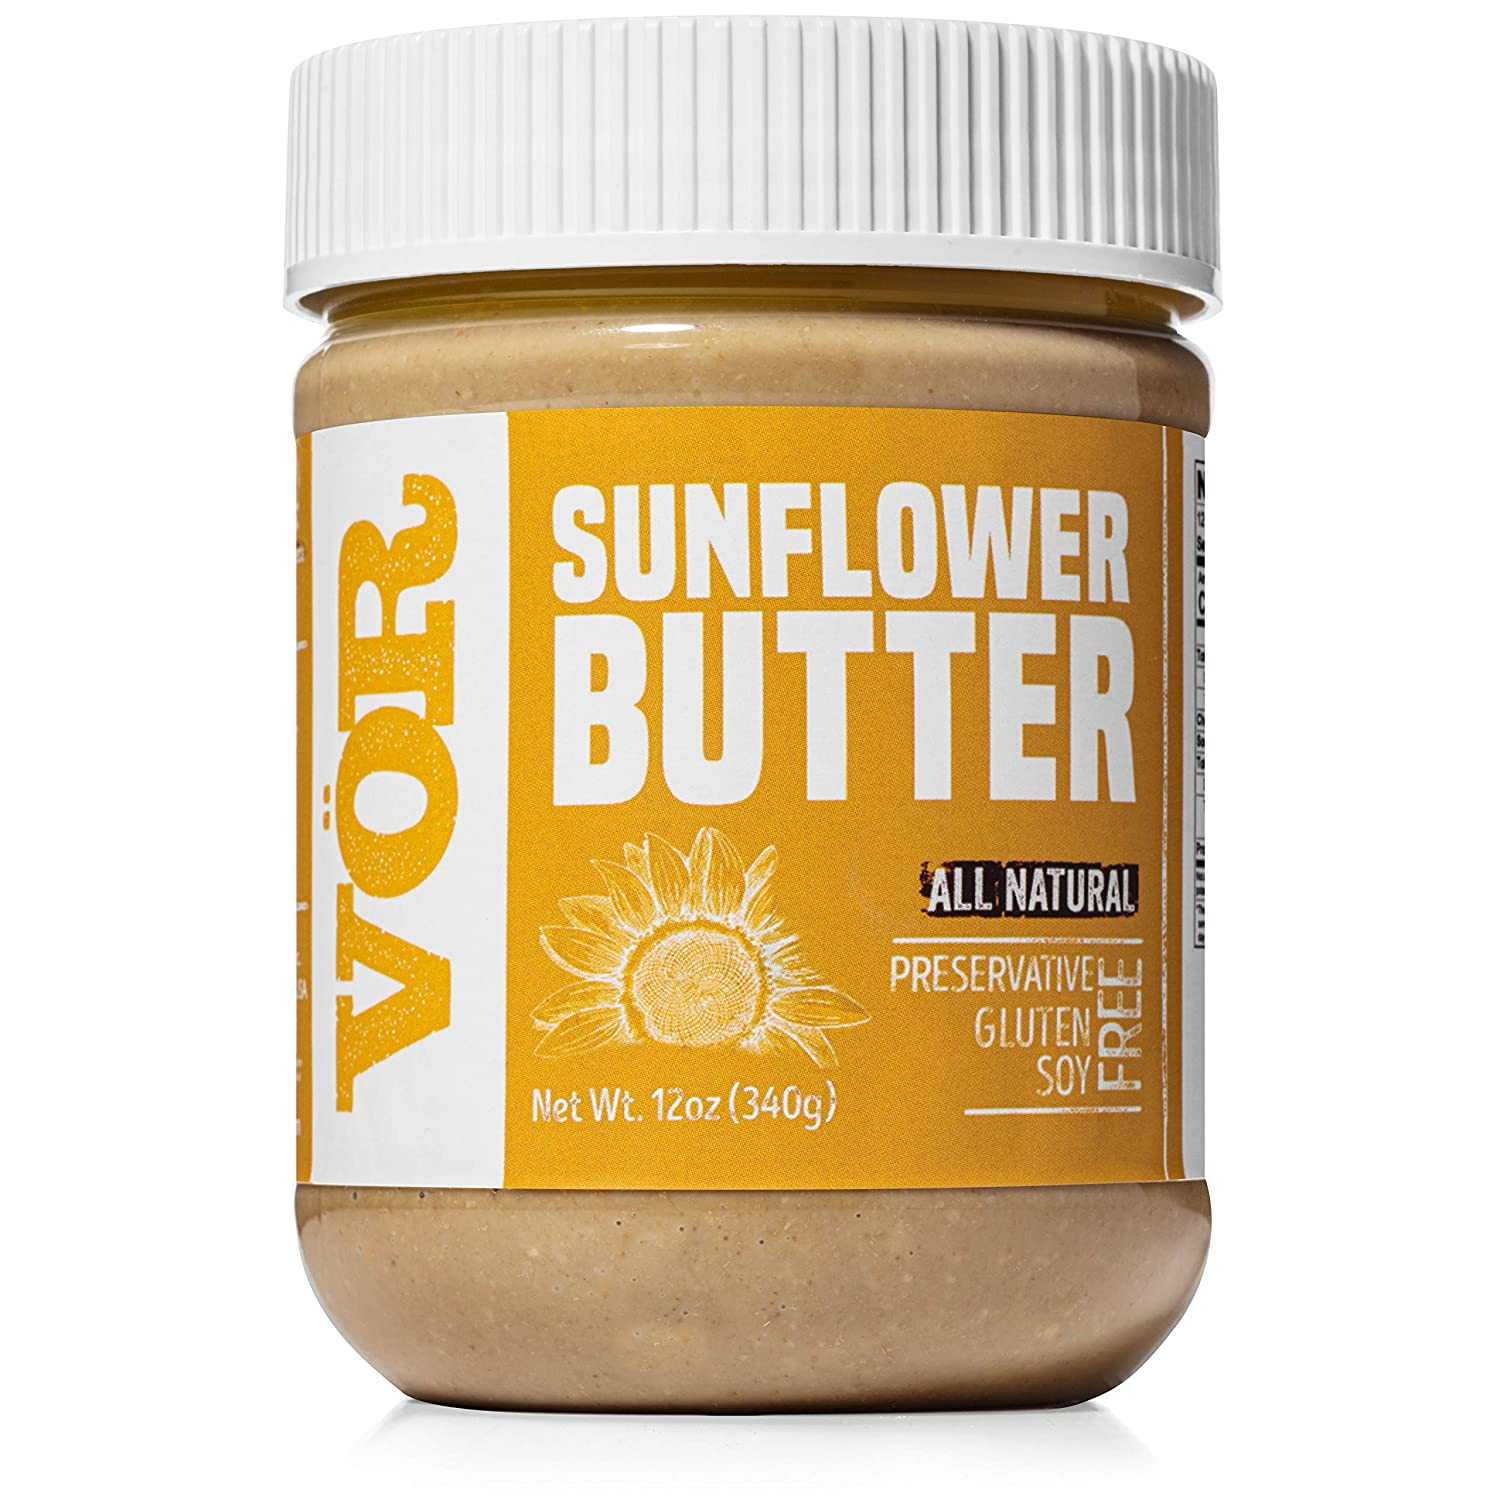 is sunflower butter ok on a keto diet